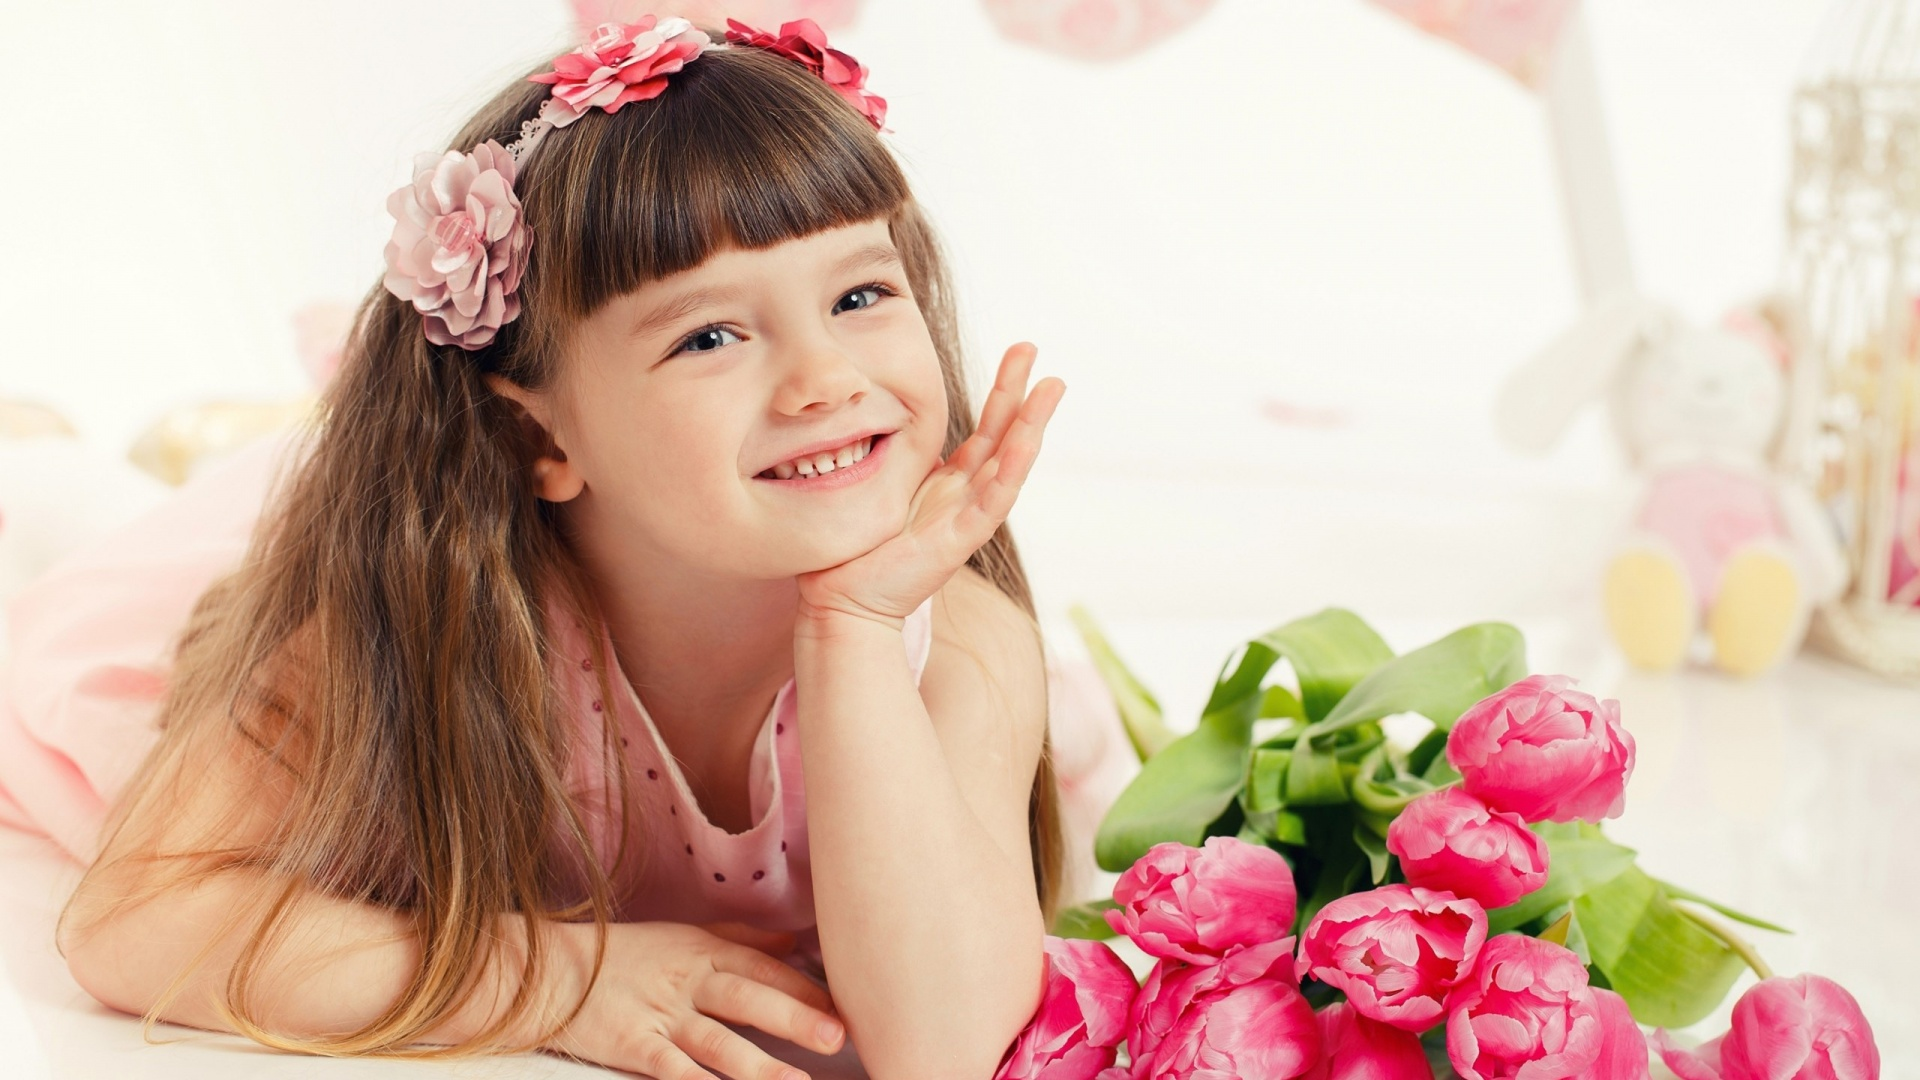 http://uupload.ir/files/0er4_beautiful_little_girl_with_flowers_and_toys-1920x1080.jpg